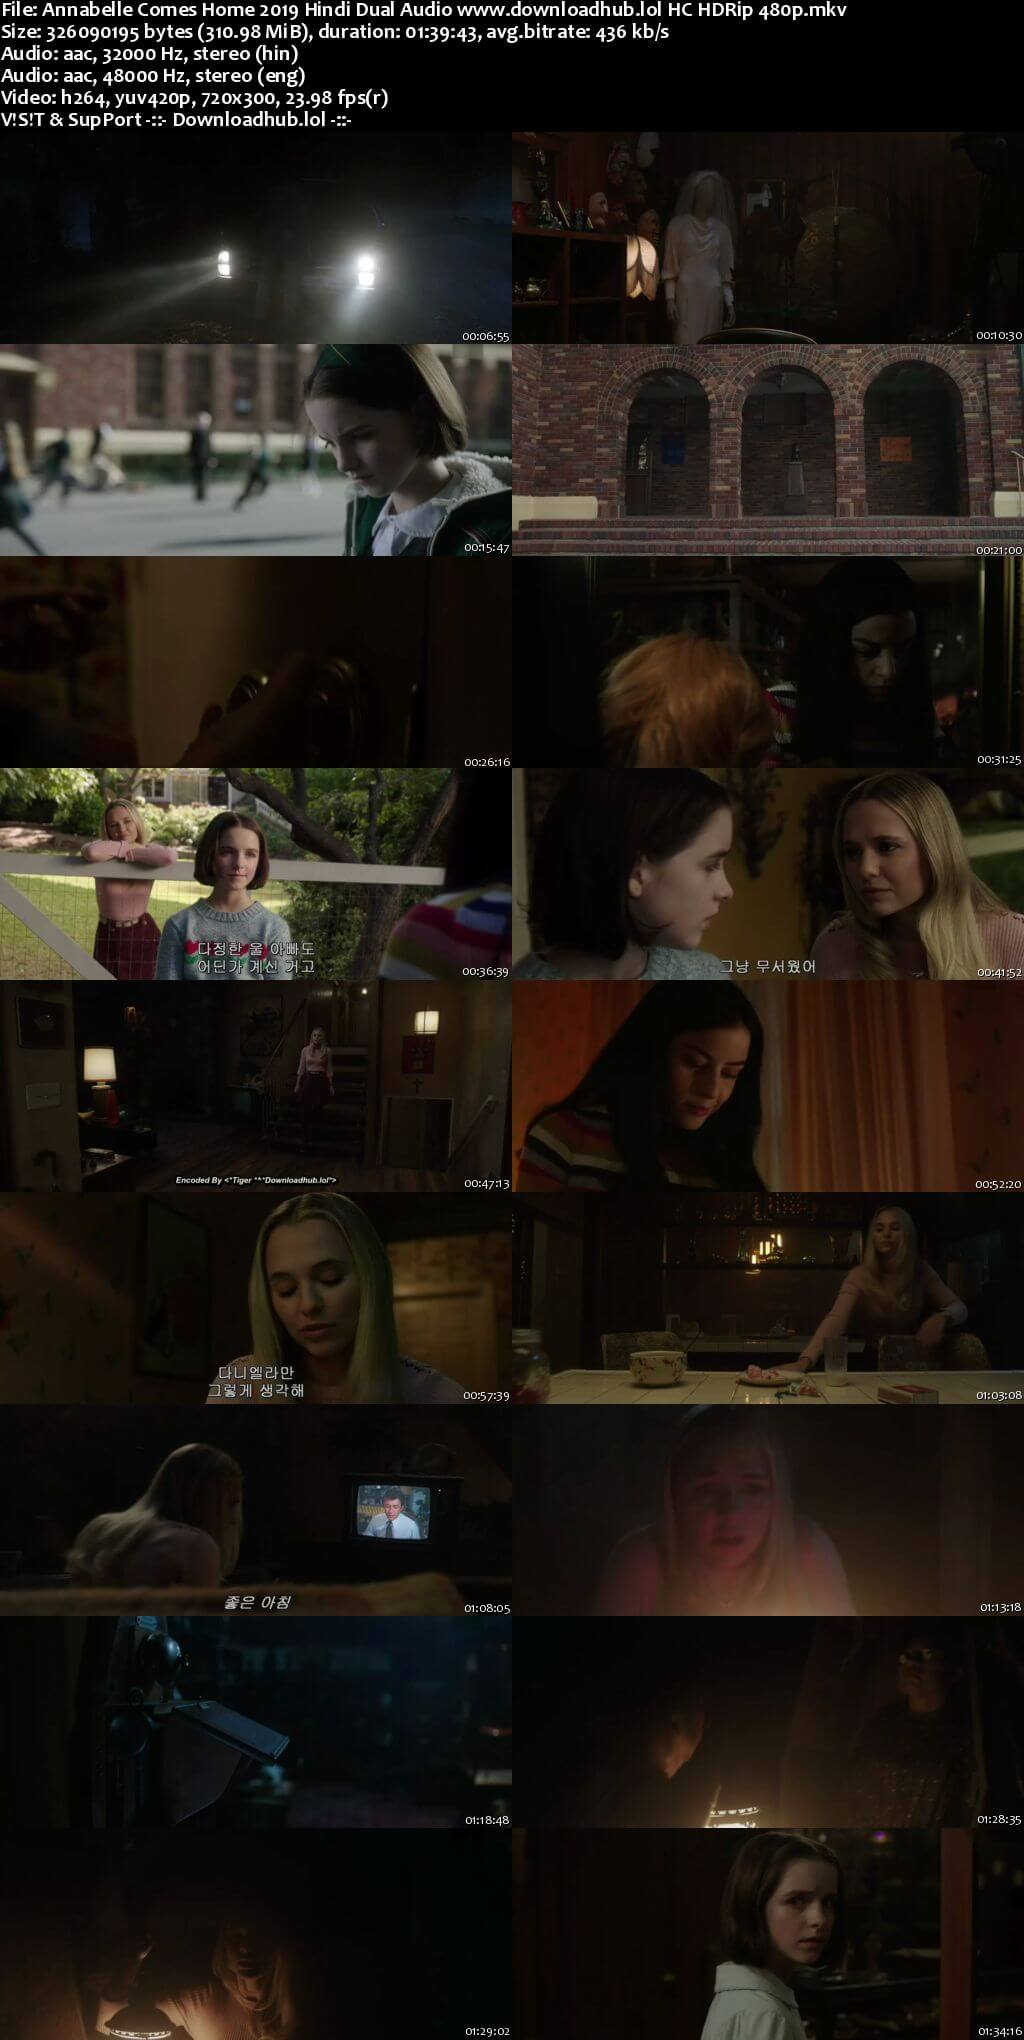 Annabelle Comes Home 2019 Hindi Dual Audio 300MB HC HDRip 480p